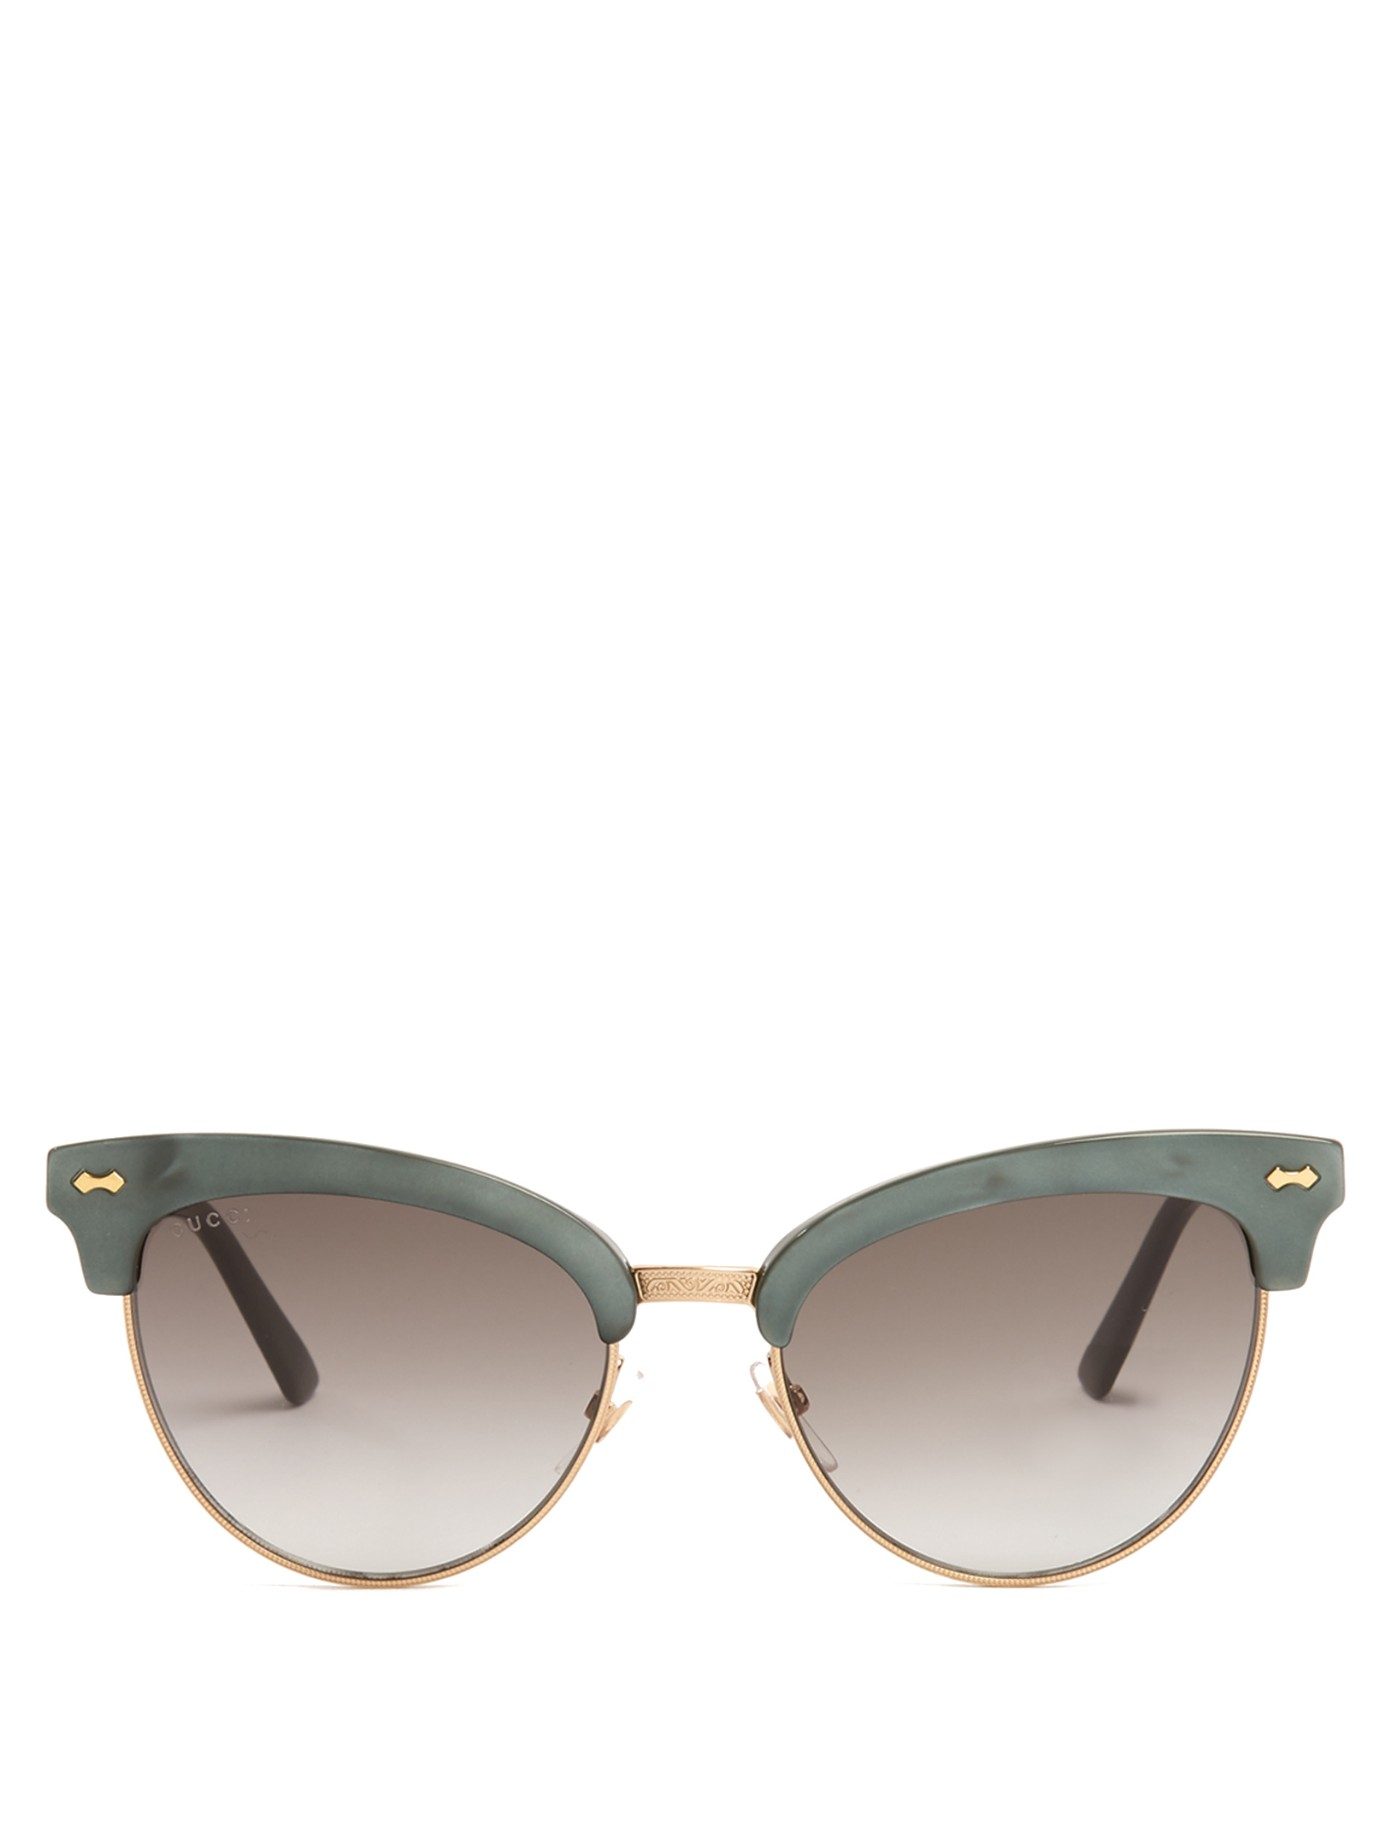 Half Frame Cat Glasses : Gucci Cat-eye Half-frame Sunglasses in Gray Lyst